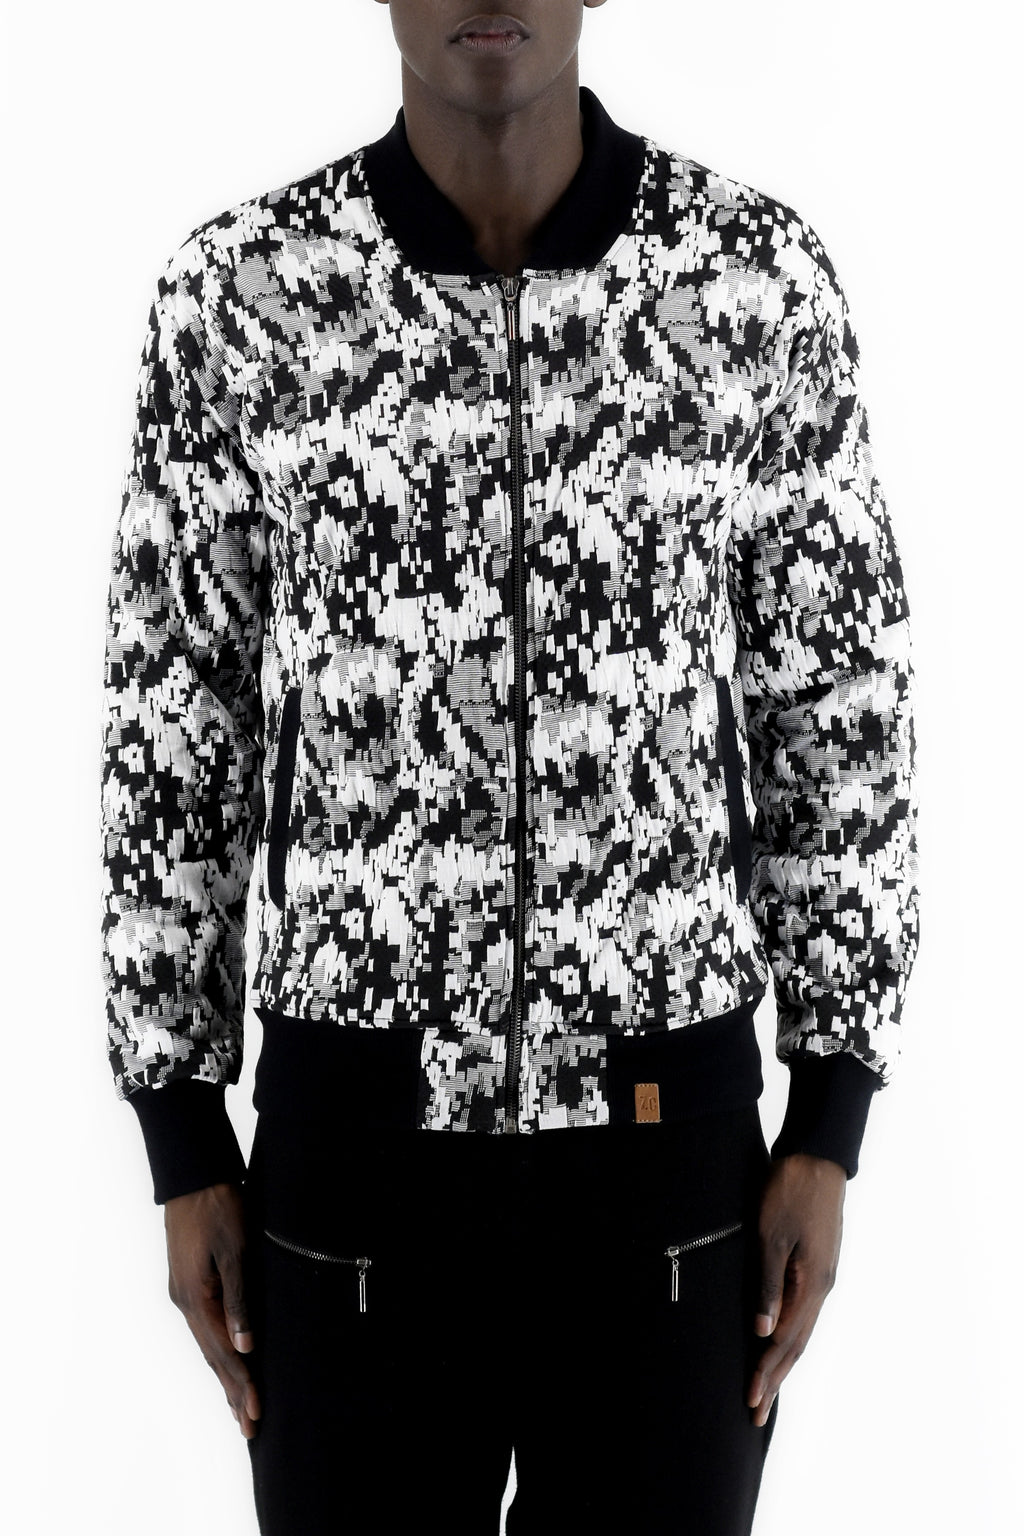 ZG5140 Black/Milk Jacquard Bomber jacket